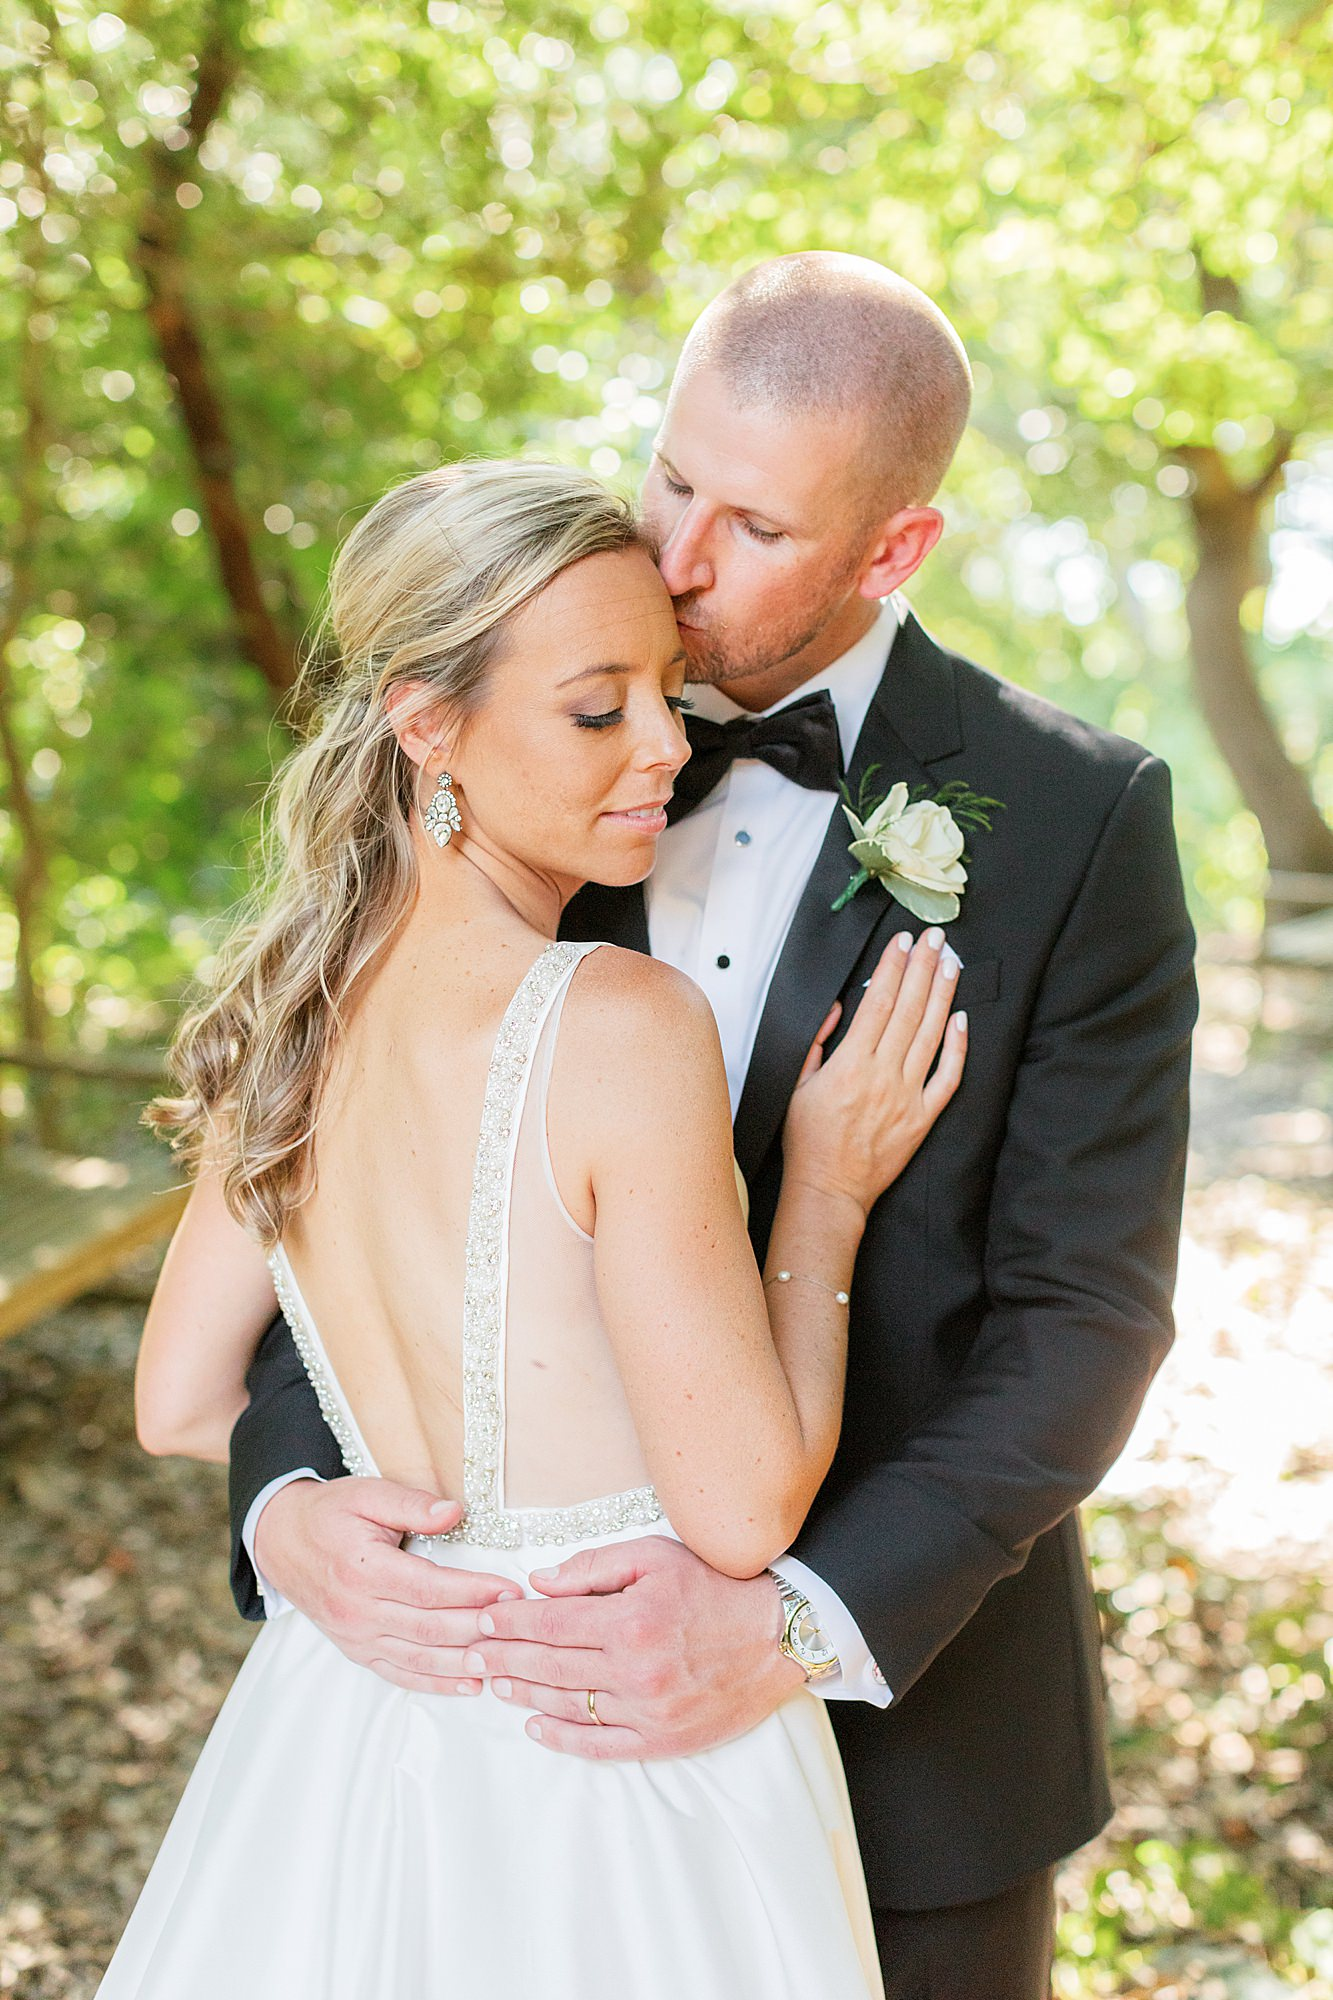 Natural and Vibrant Wedding Photography at the Reeds in Stone Harbor NJ by Magdalena Studios 0047